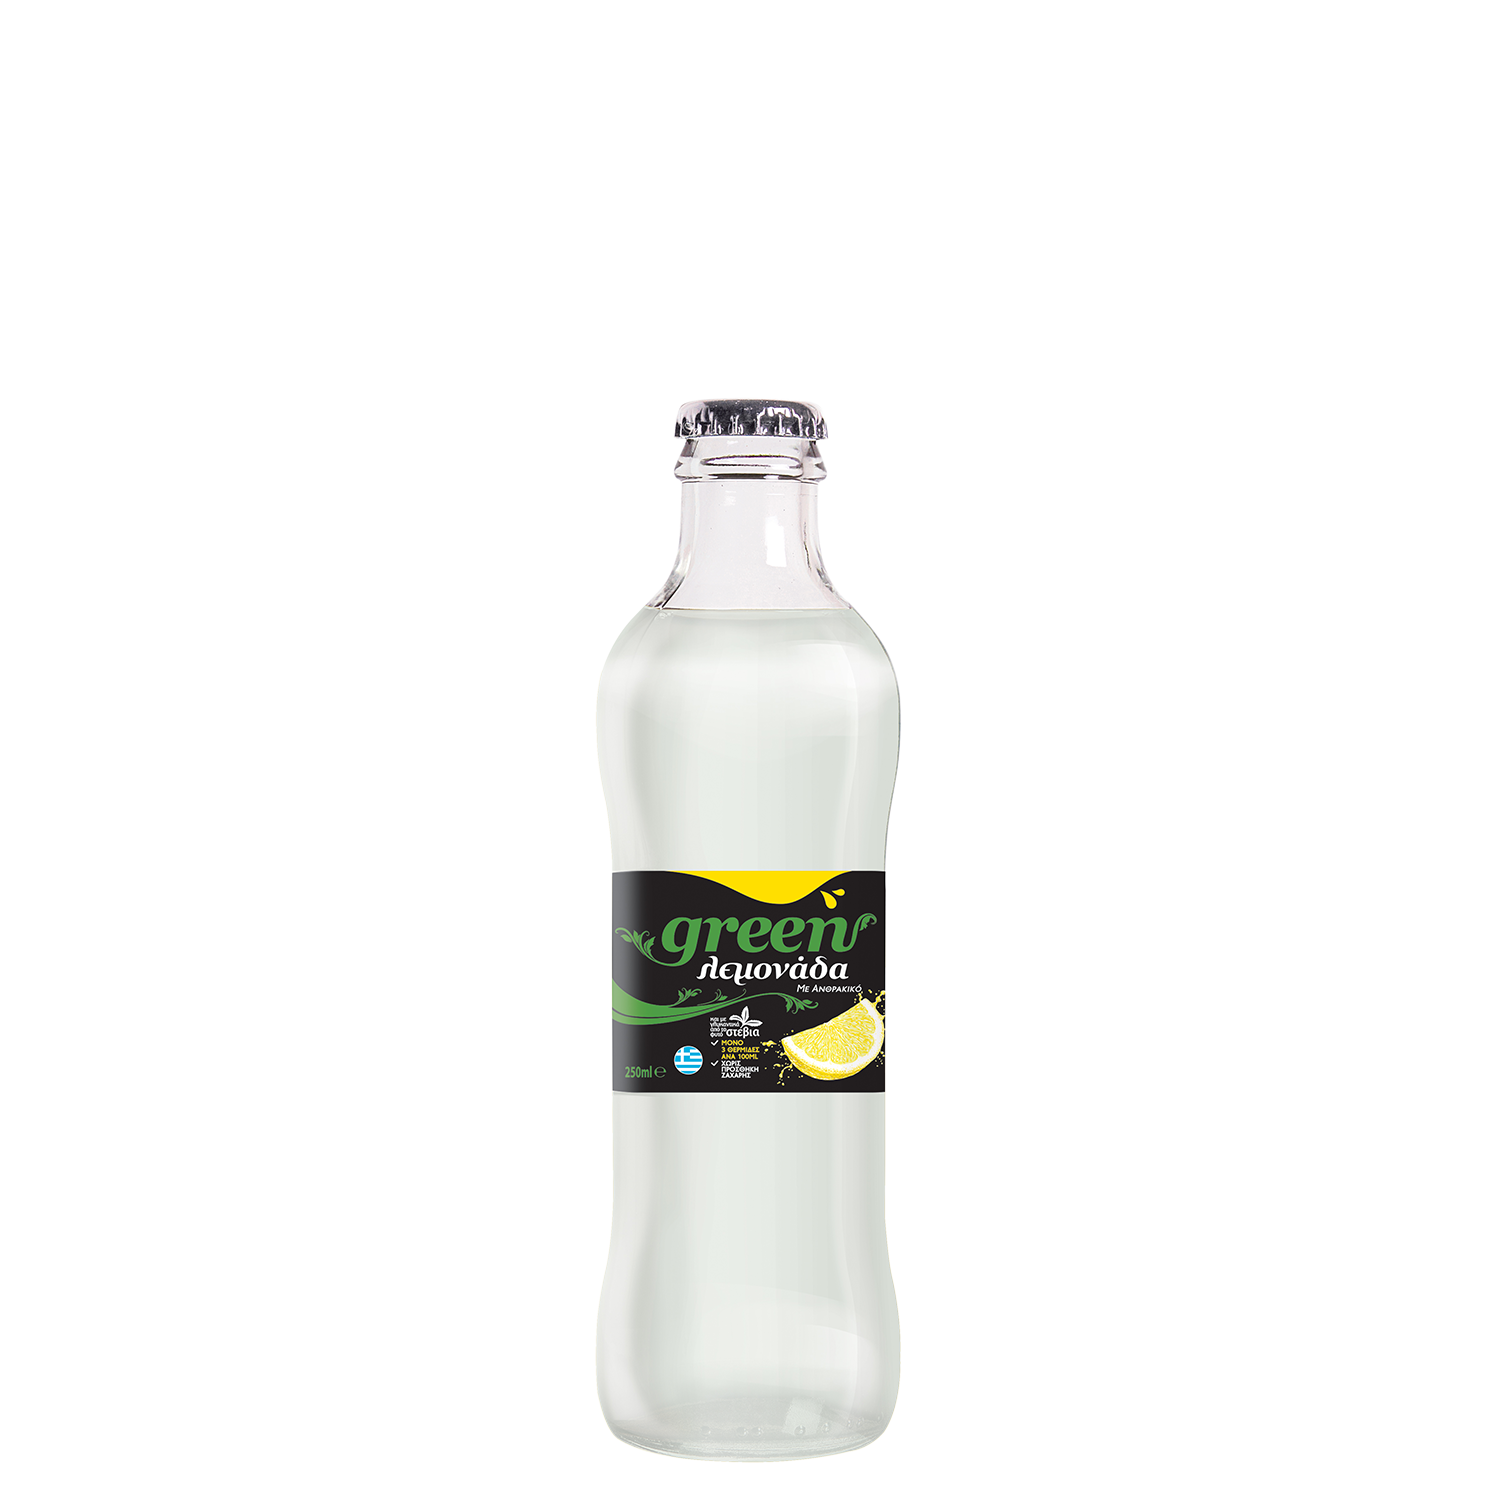 Green Lemon - 250ml - Glass bottle